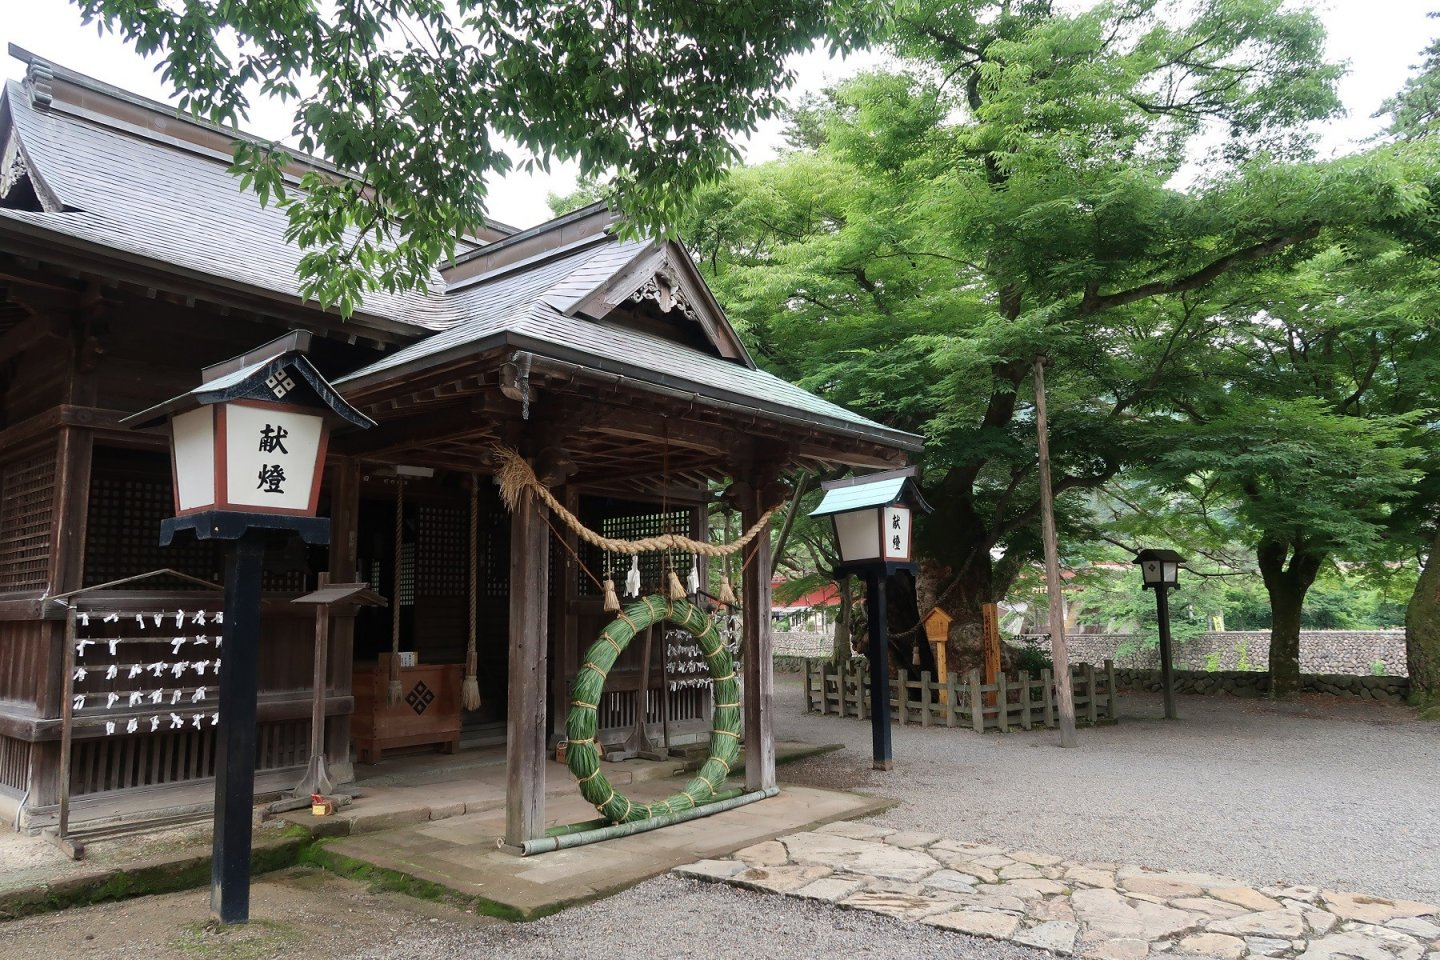 Yasaka Shrine and Wakuguri (Tsuwano, Shimane prefecture)